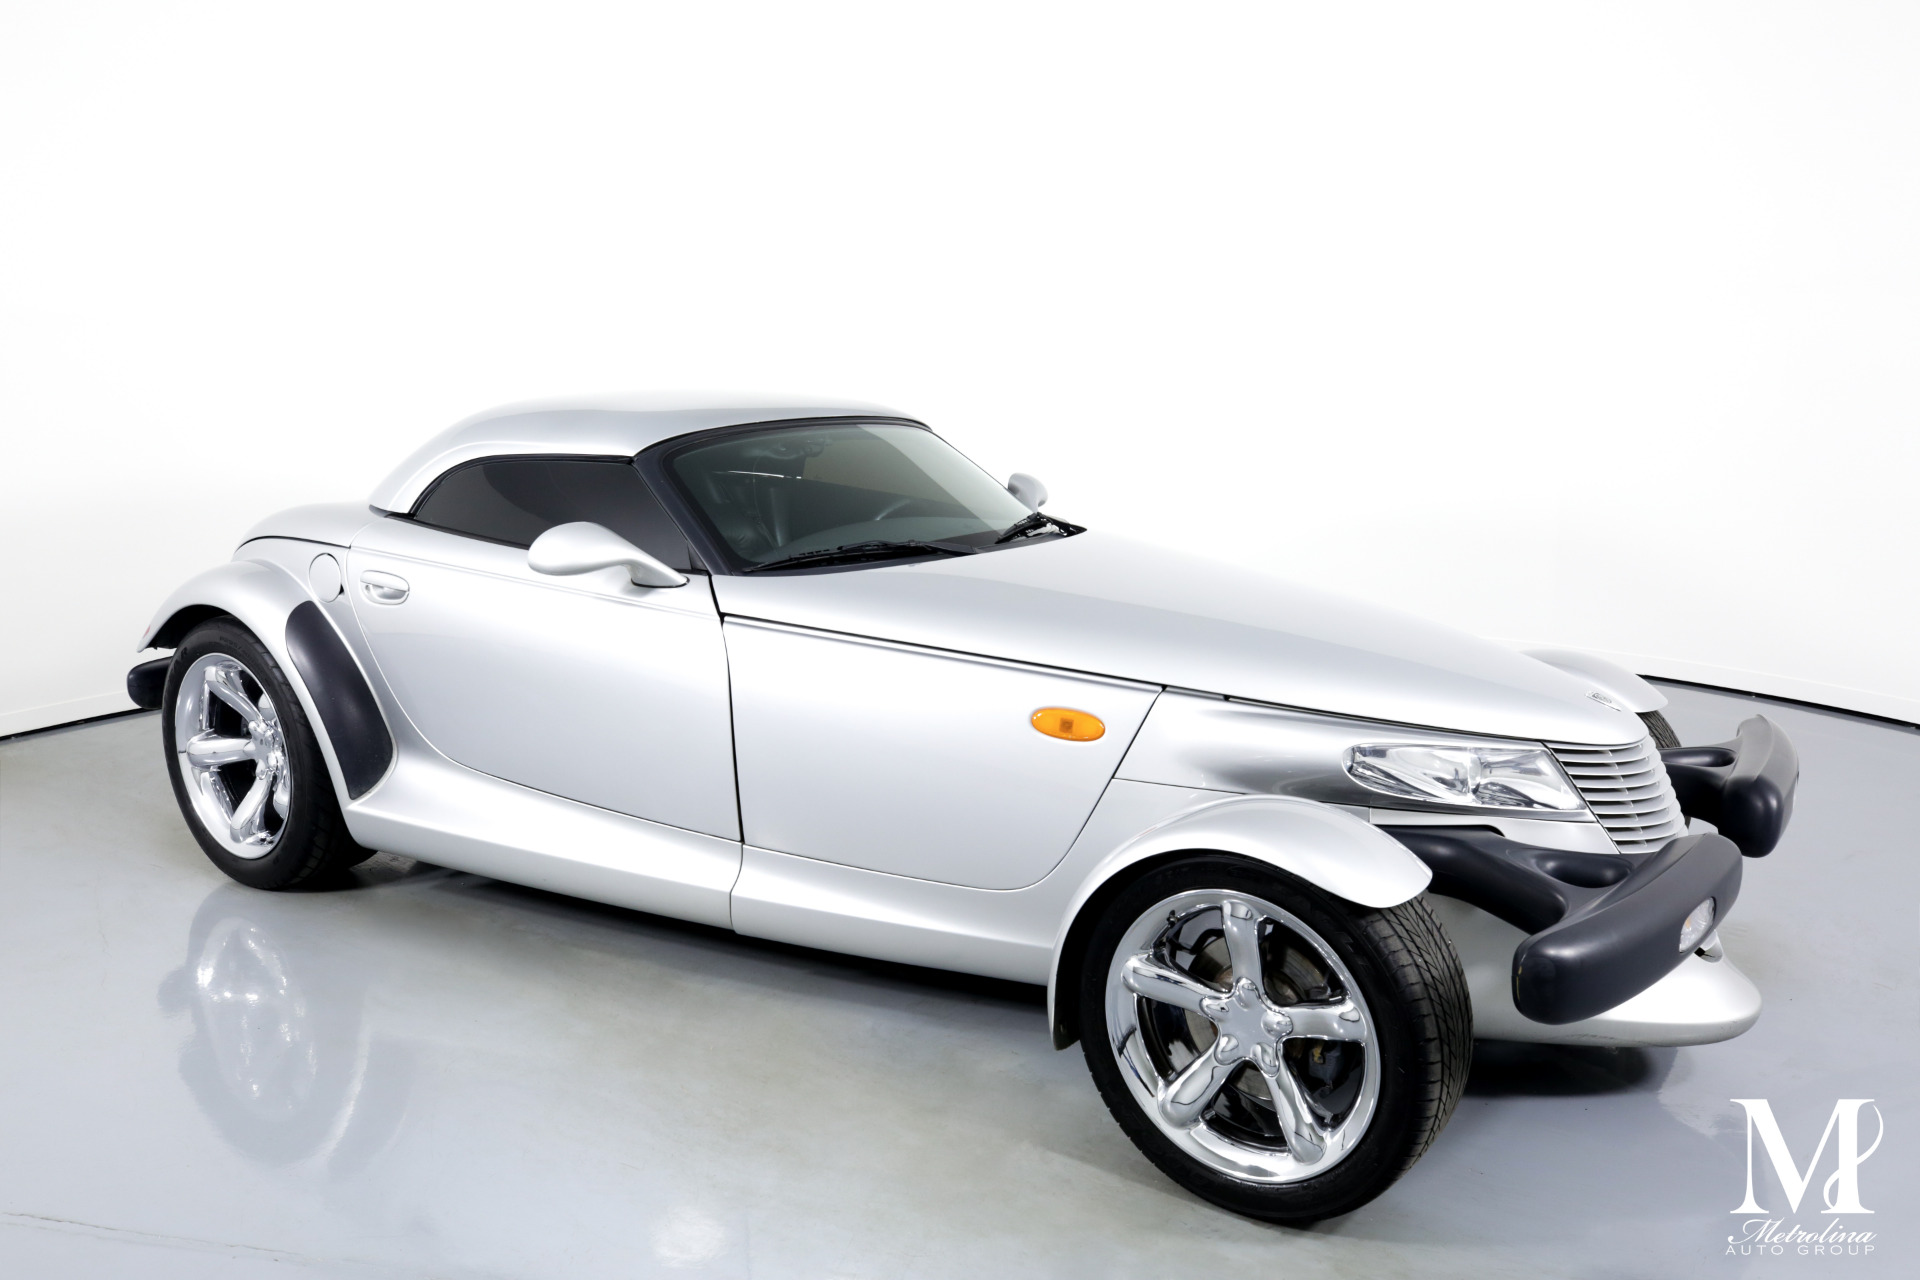 Used 2001 Chrysler Prowler for sale $25,996 at Metrolina Auto Group in Charlotte NC 28217 - 2